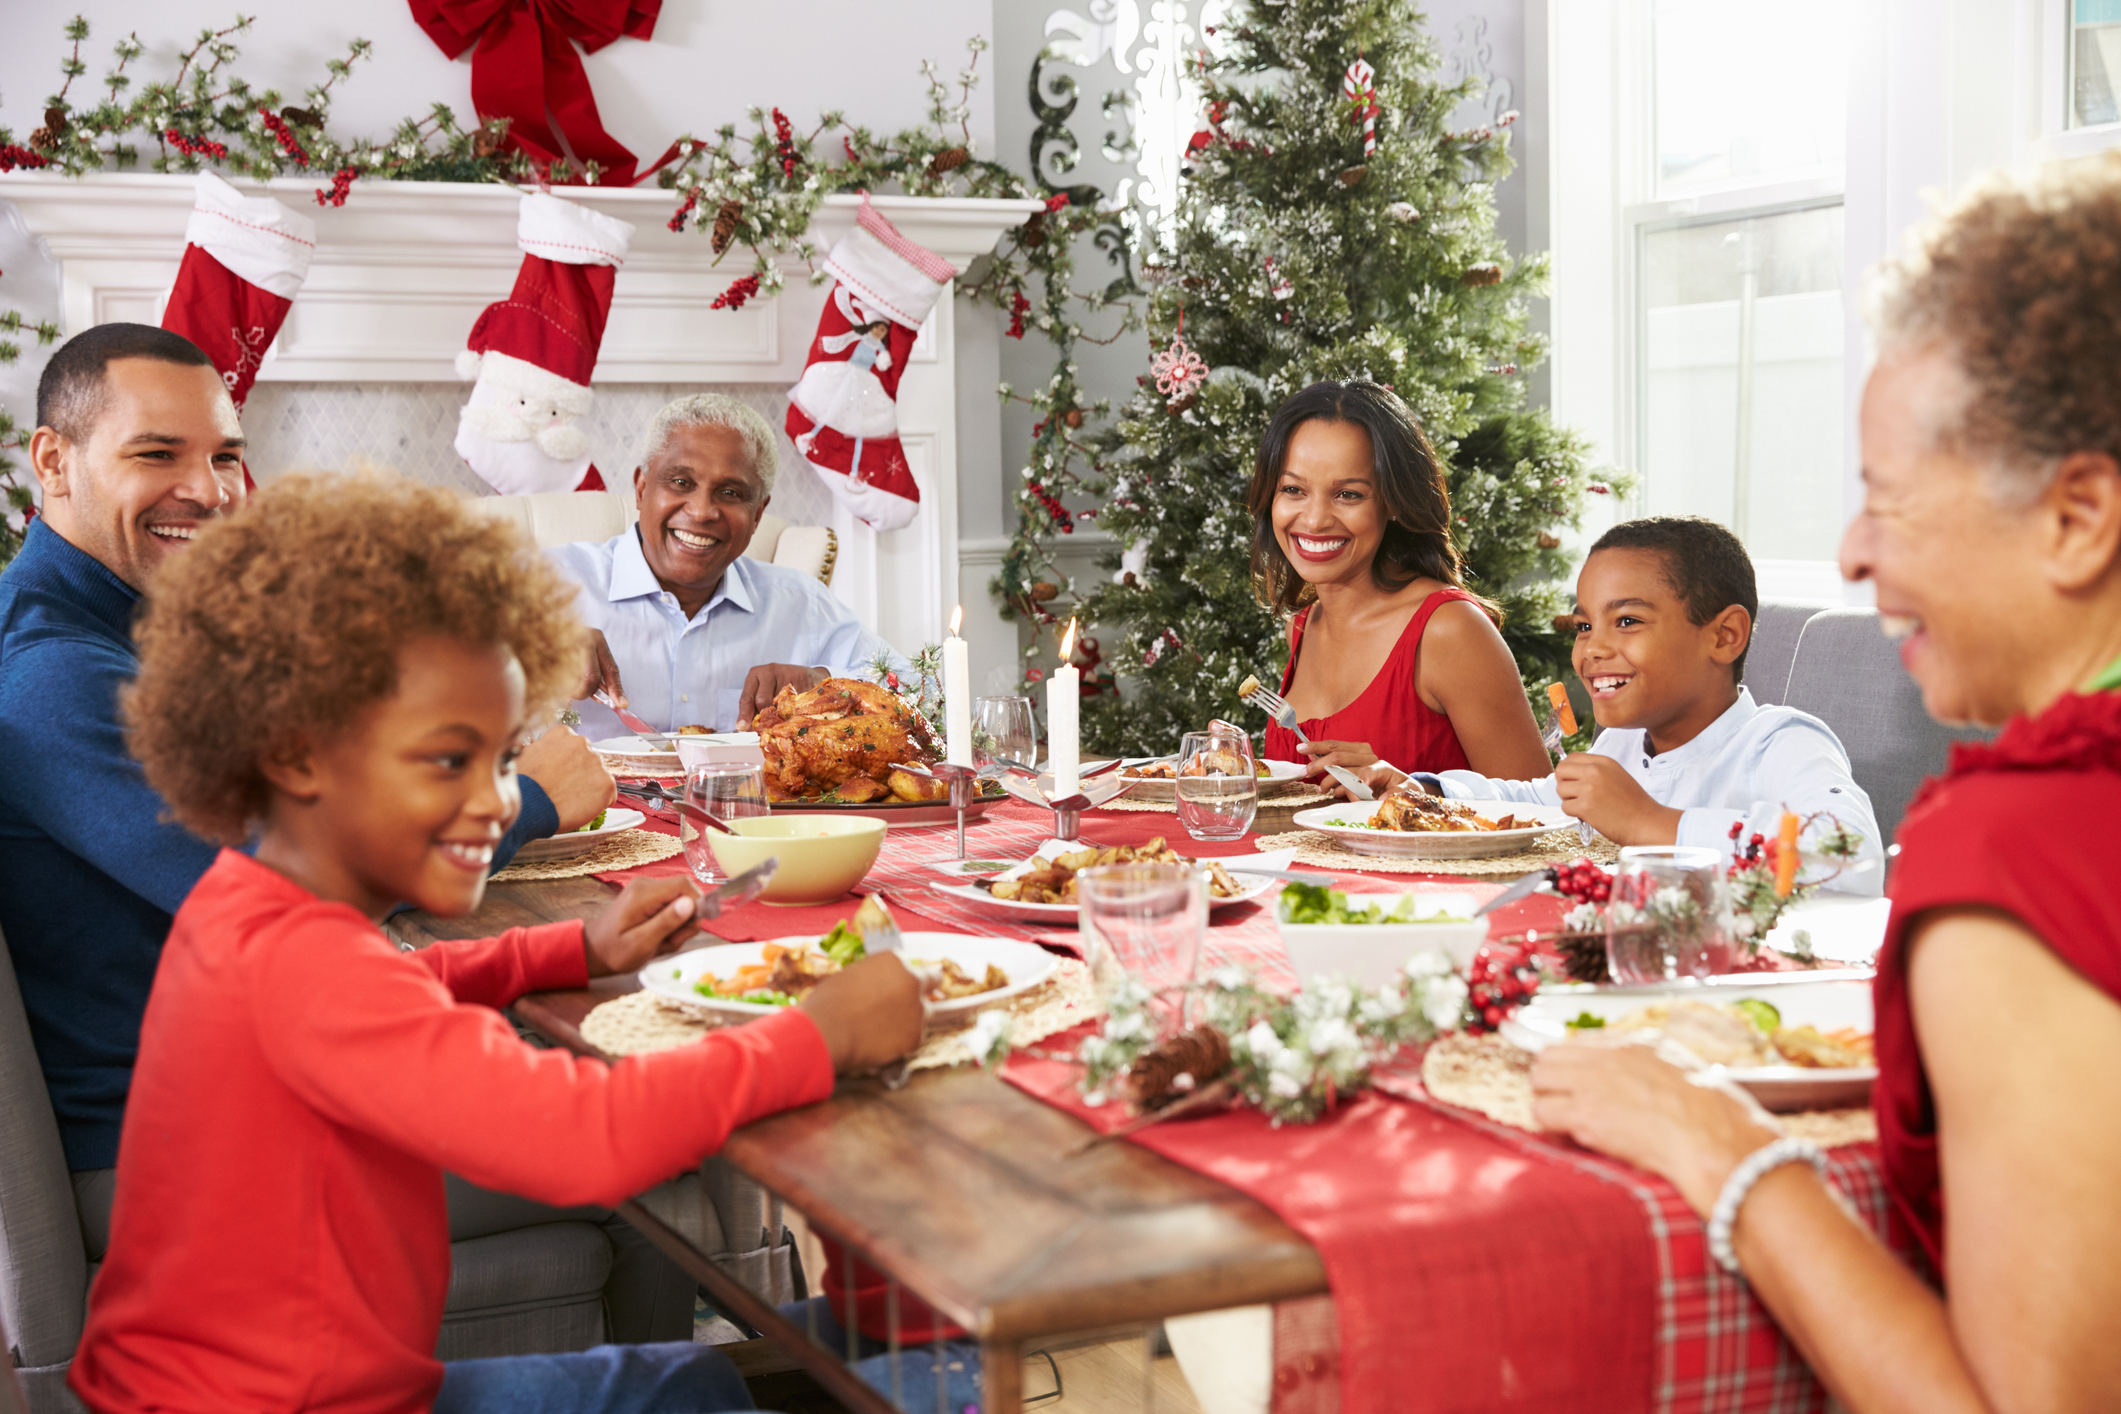 Happy Holidays, copd holiday, copd holiday tips